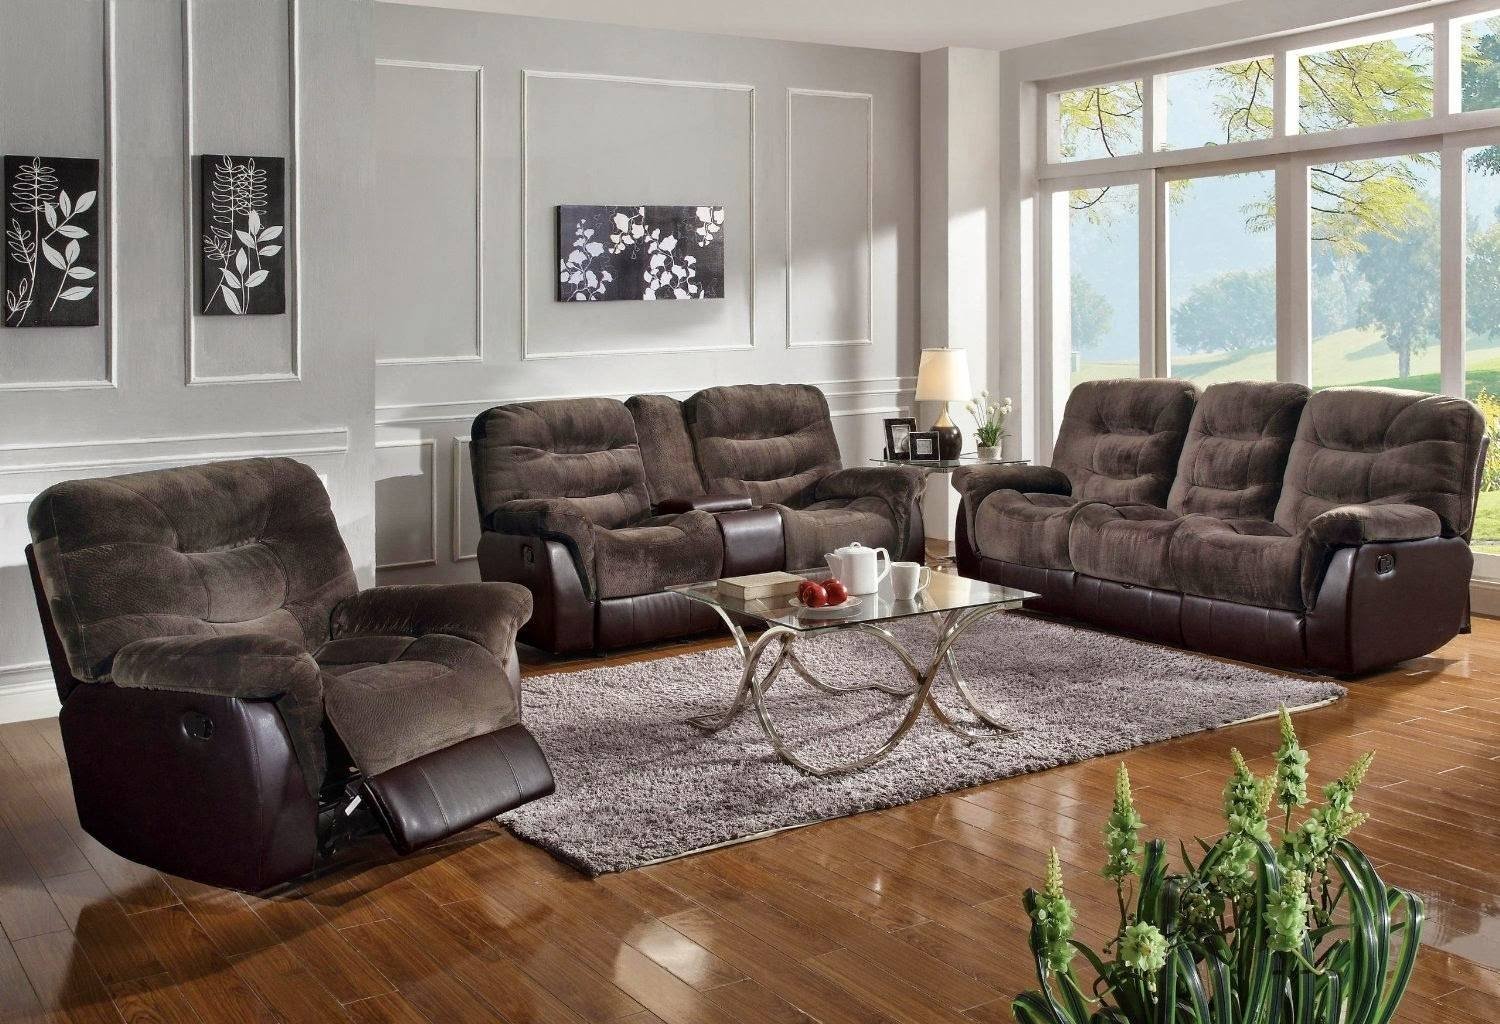 Hotelsbacau - Sectional Sofa Ideas within Classic Sectional Sofas (Image 18 of 30)